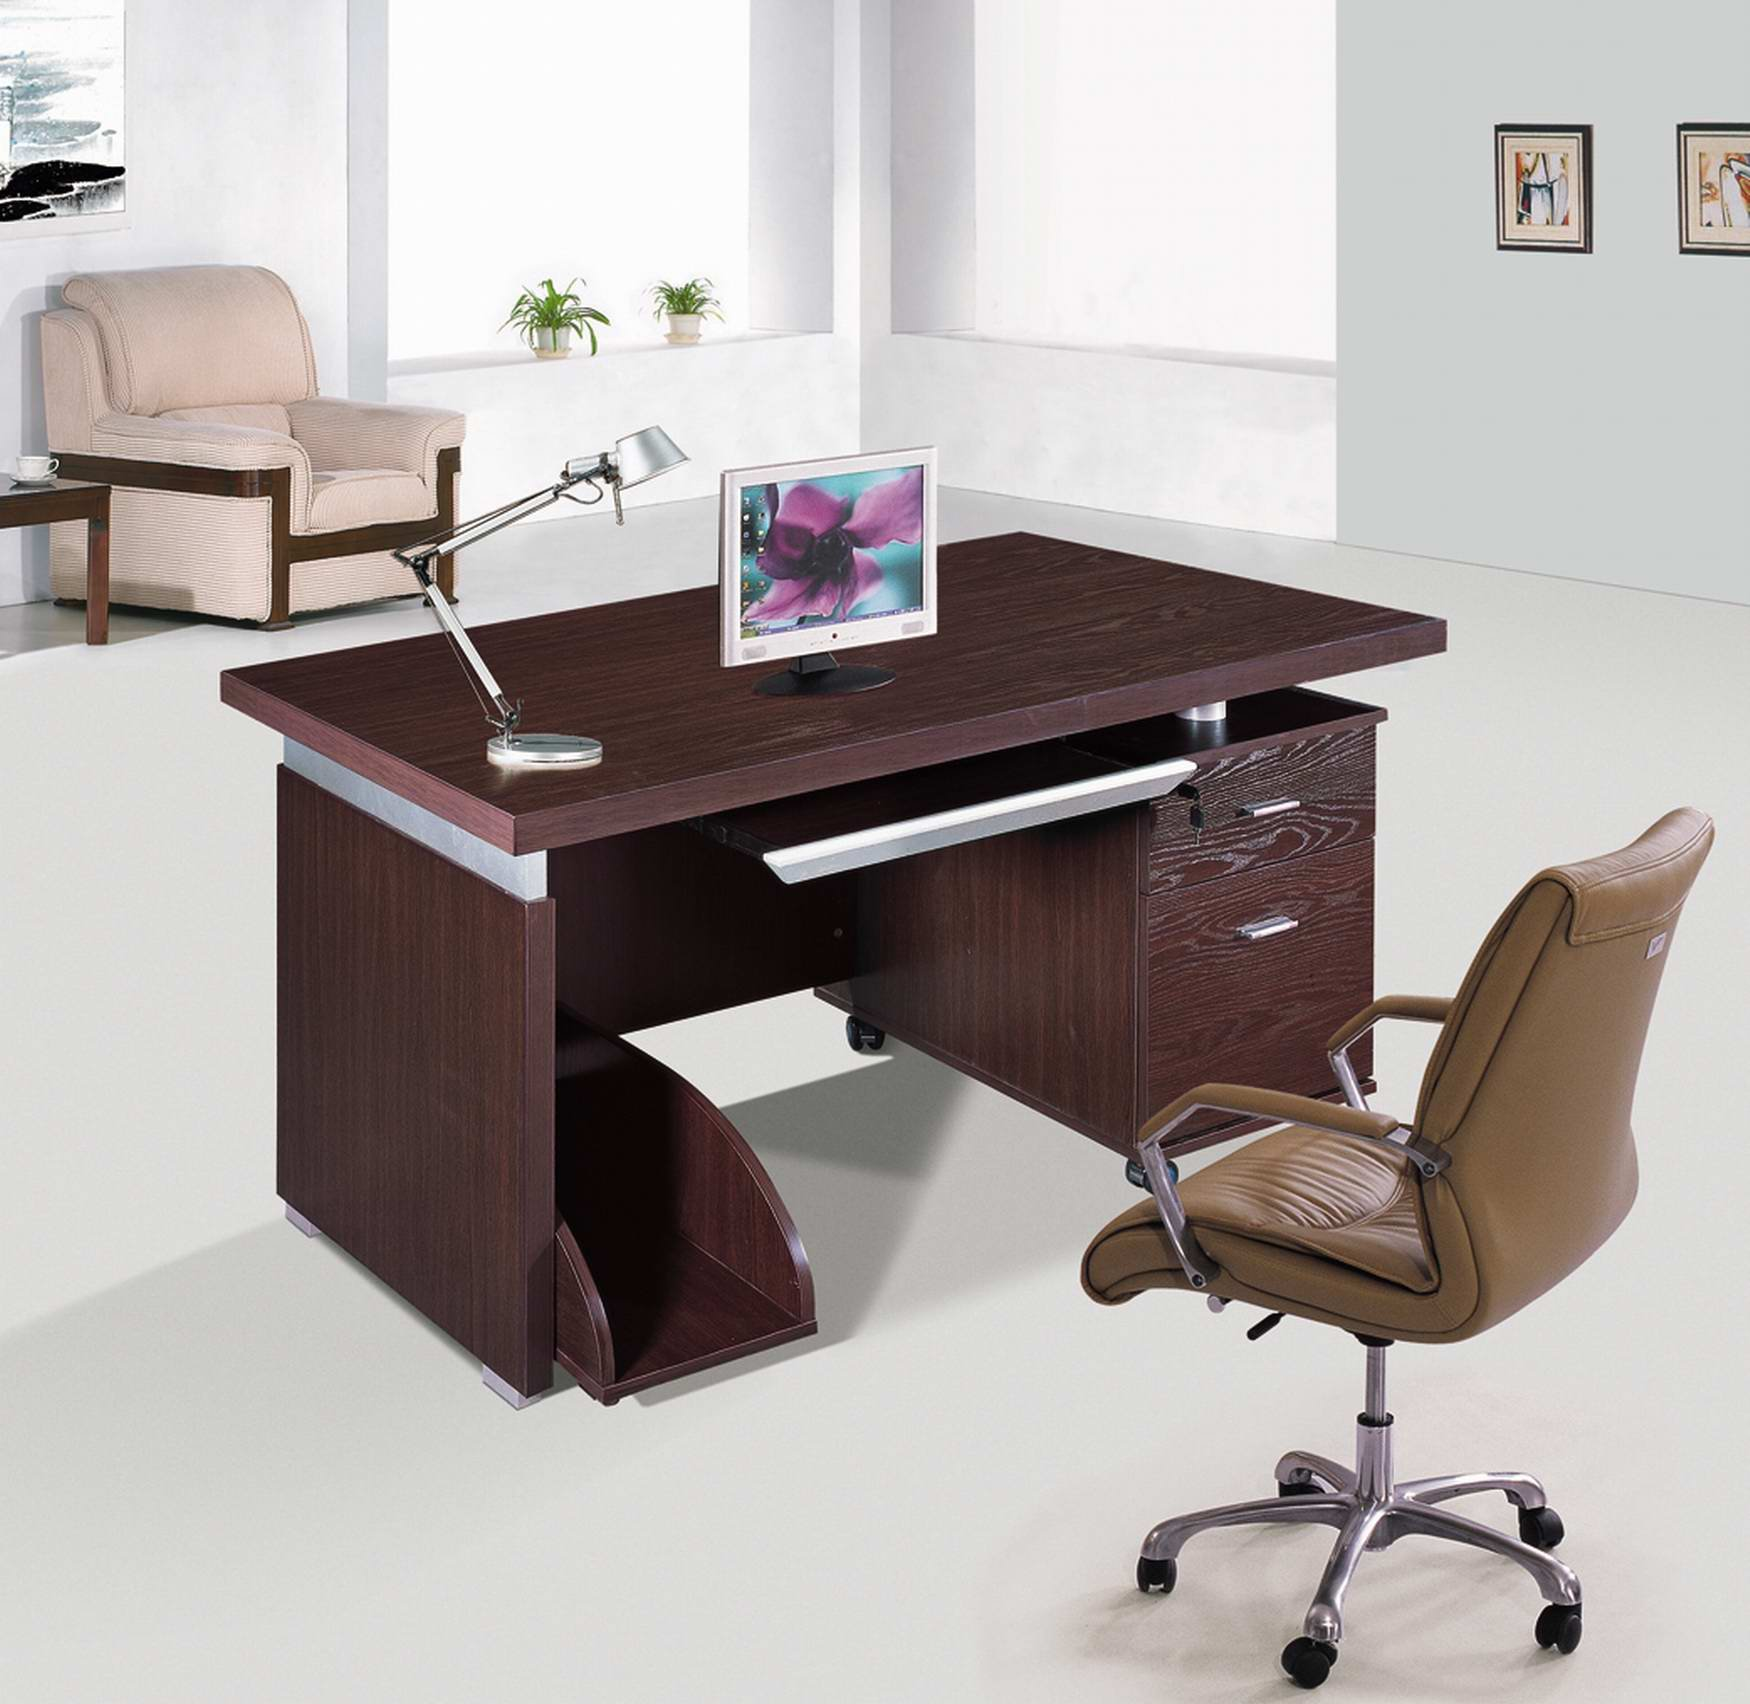 Work Tables For Home Office Bàn Làm Việc